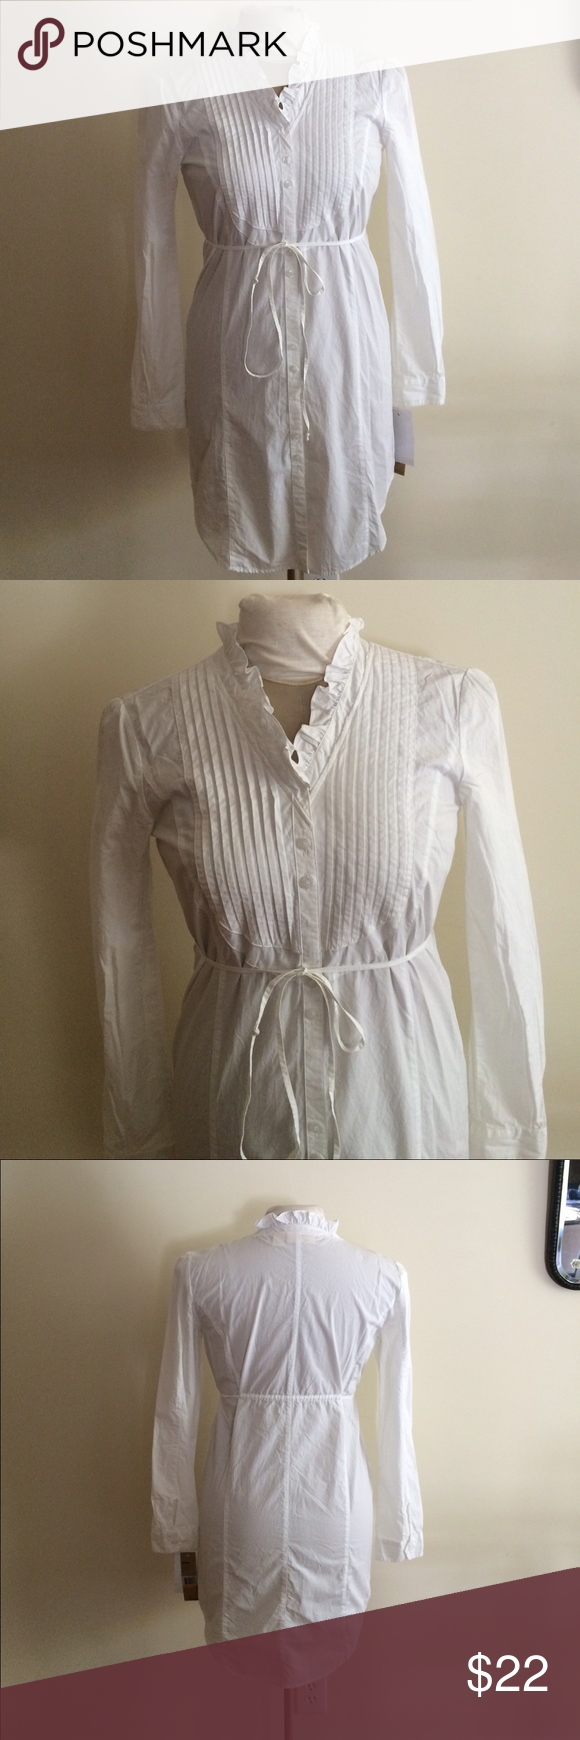 Dkny jeans white cotton dress